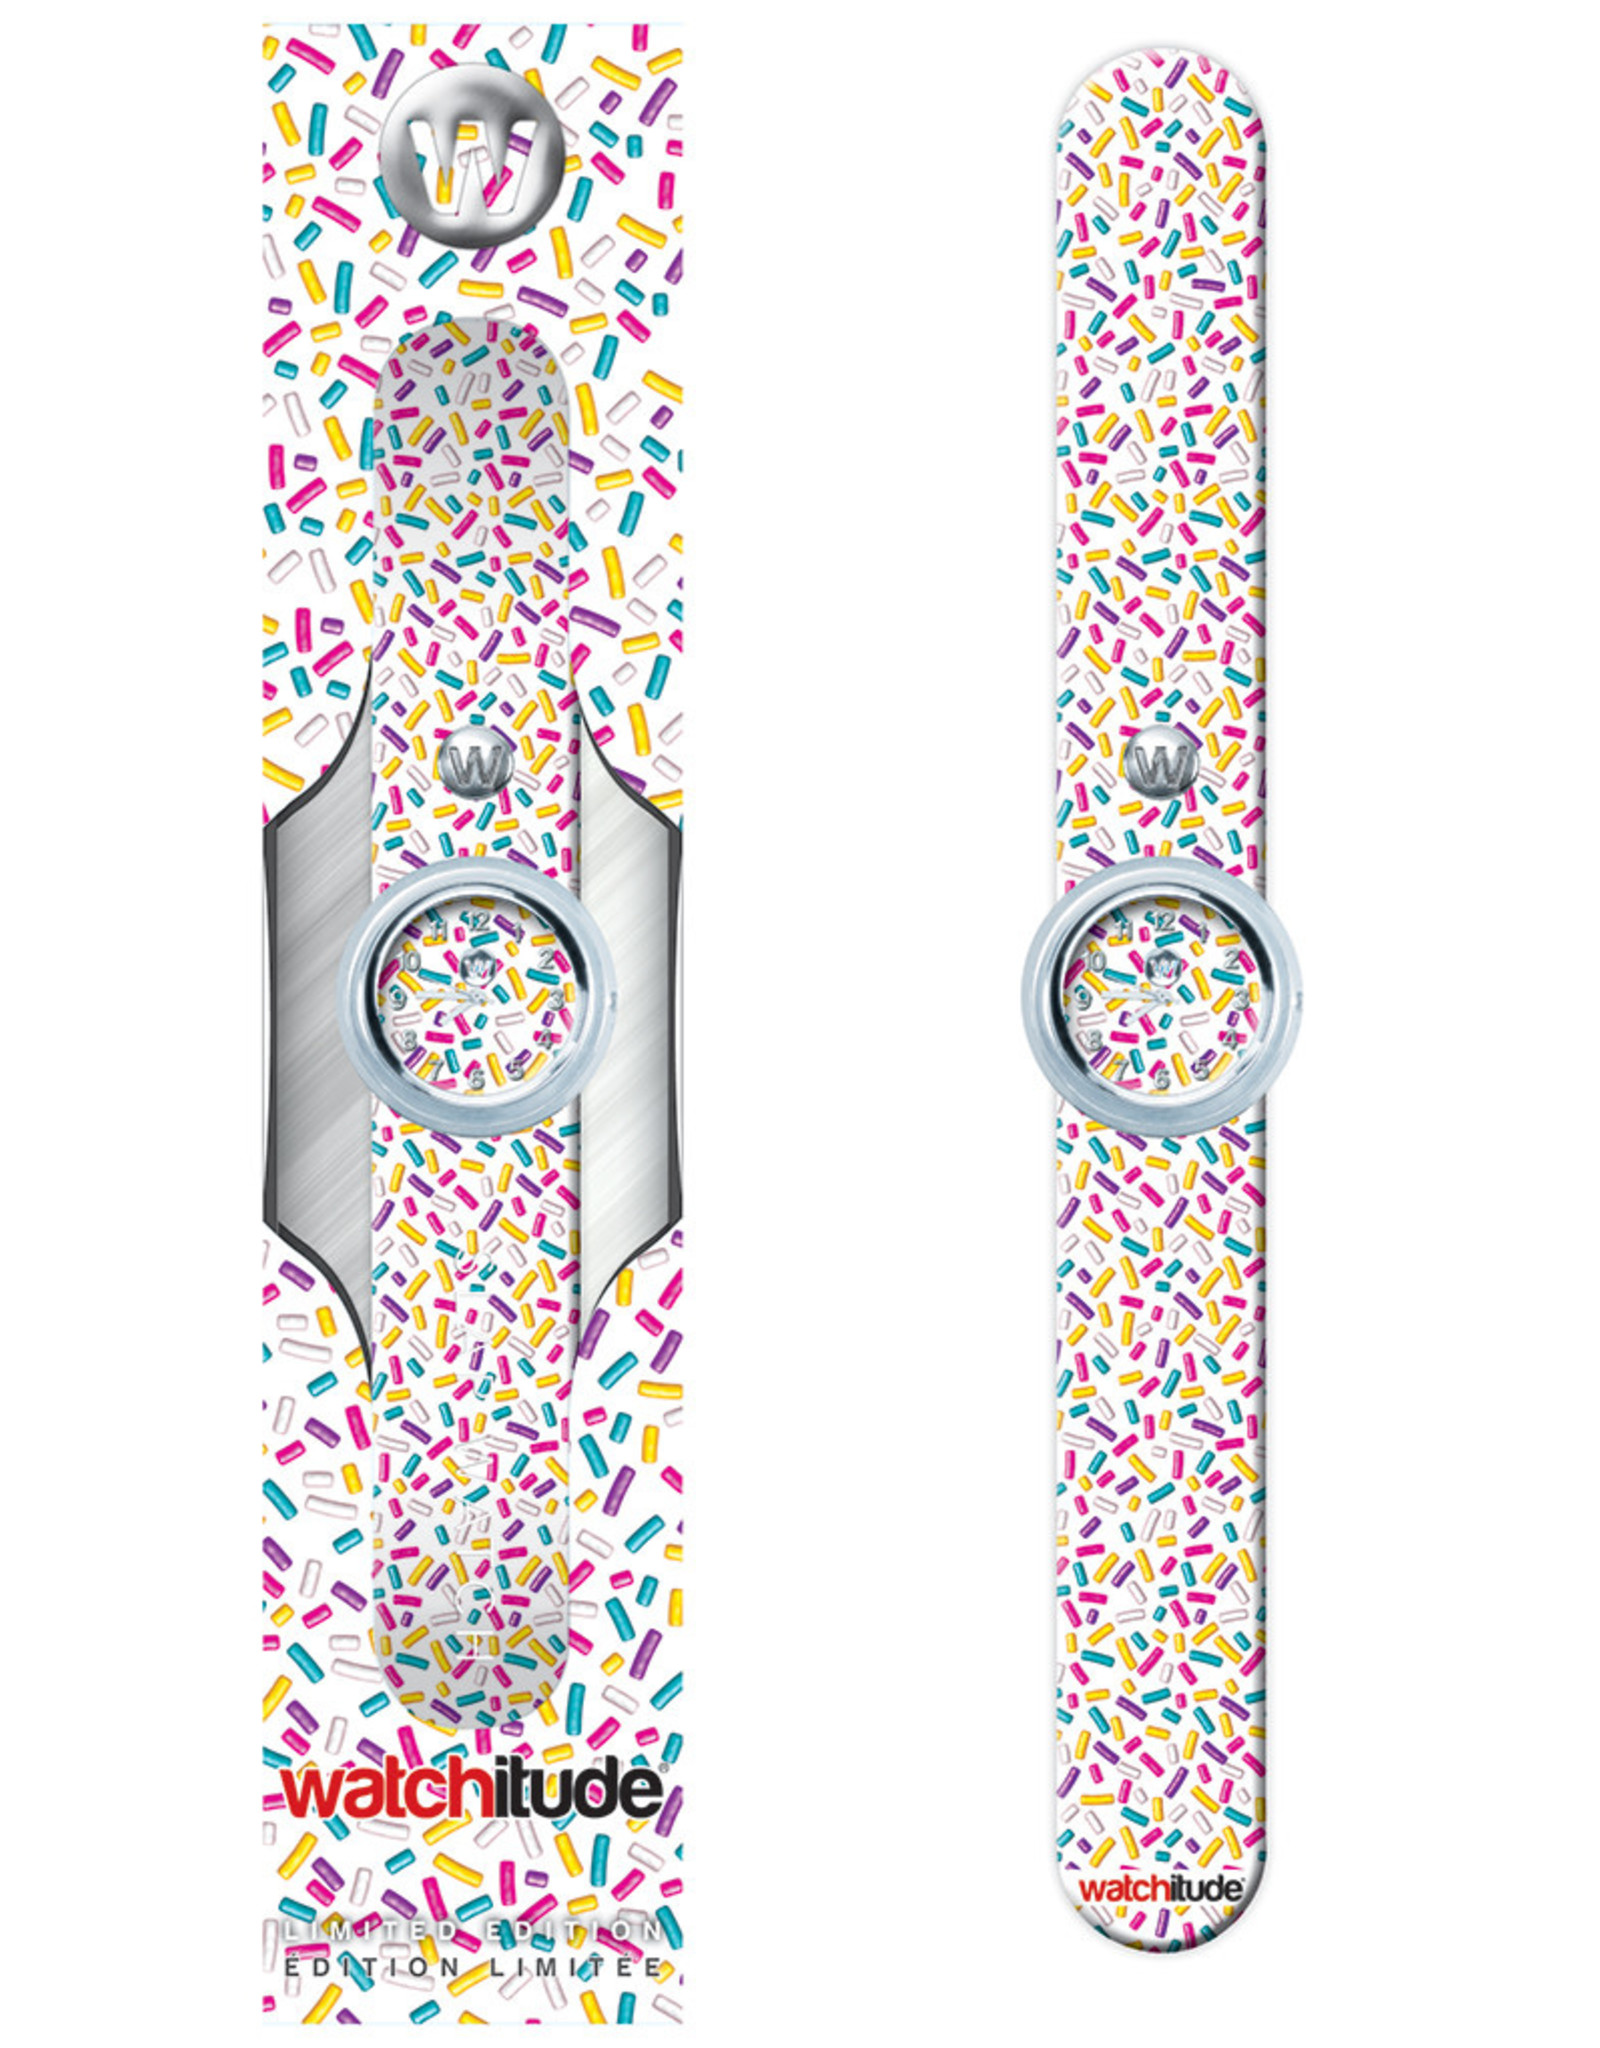 Watchitude Sprinkles - Slap Watch